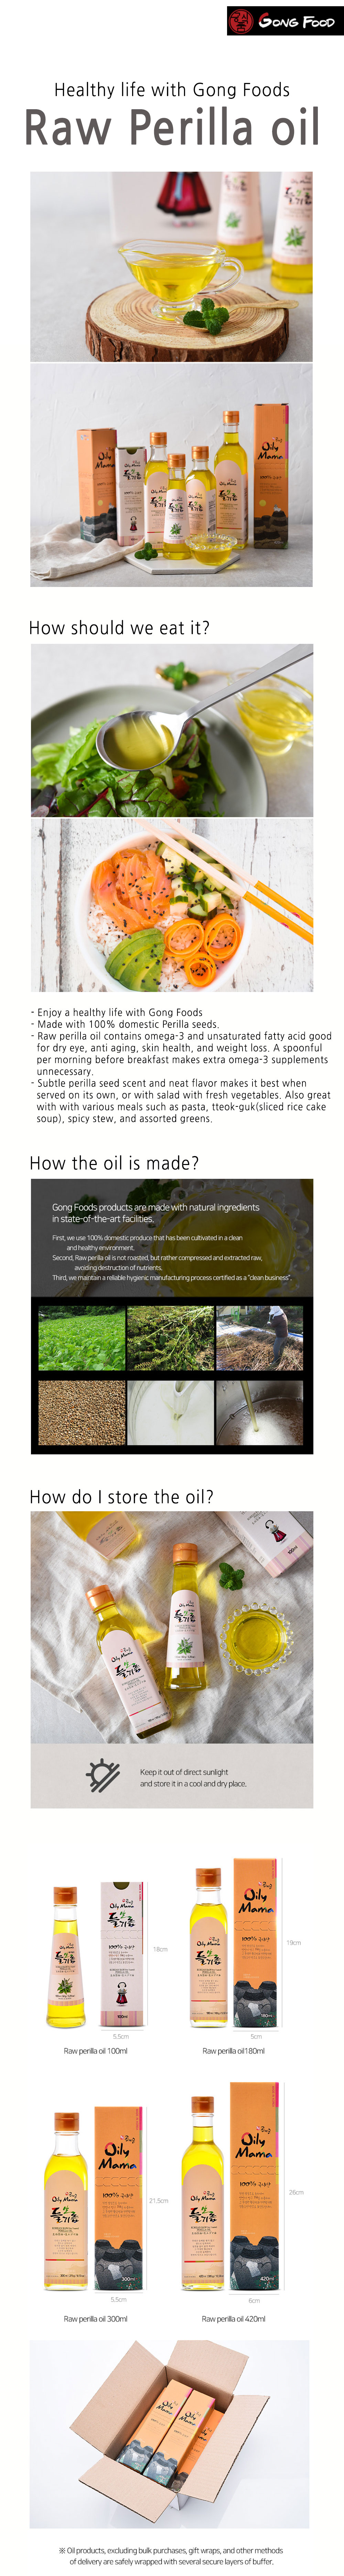 Raw Perilla Oil